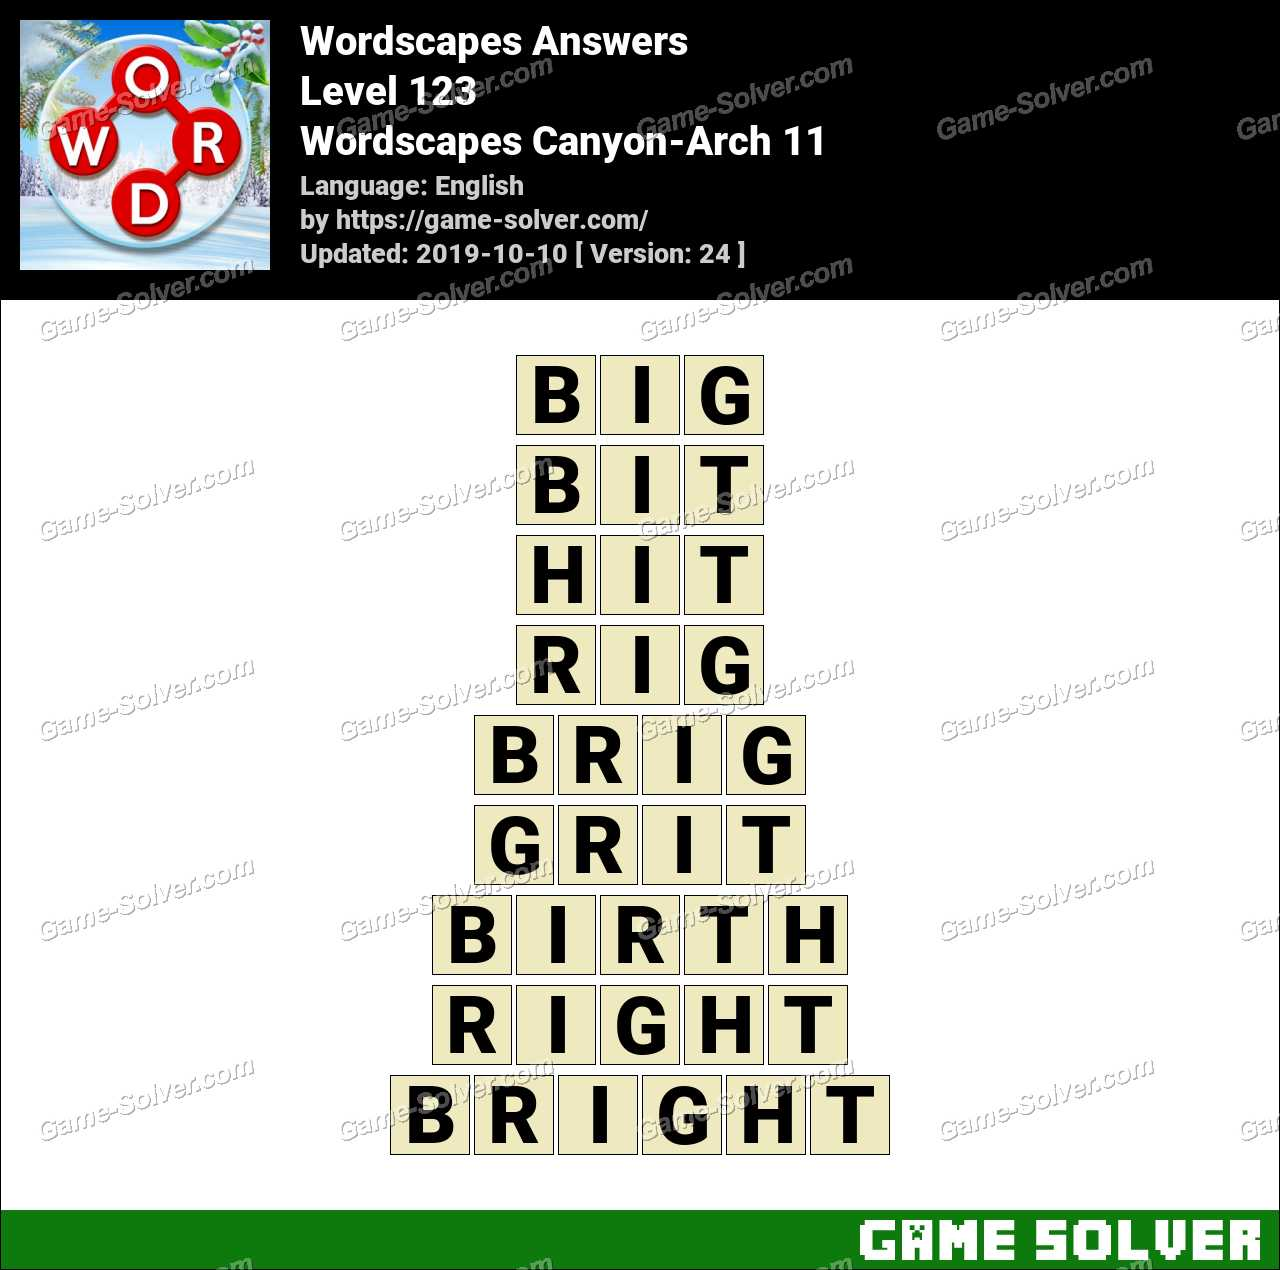 Wordscapes Canyon-Arch 11 Answers